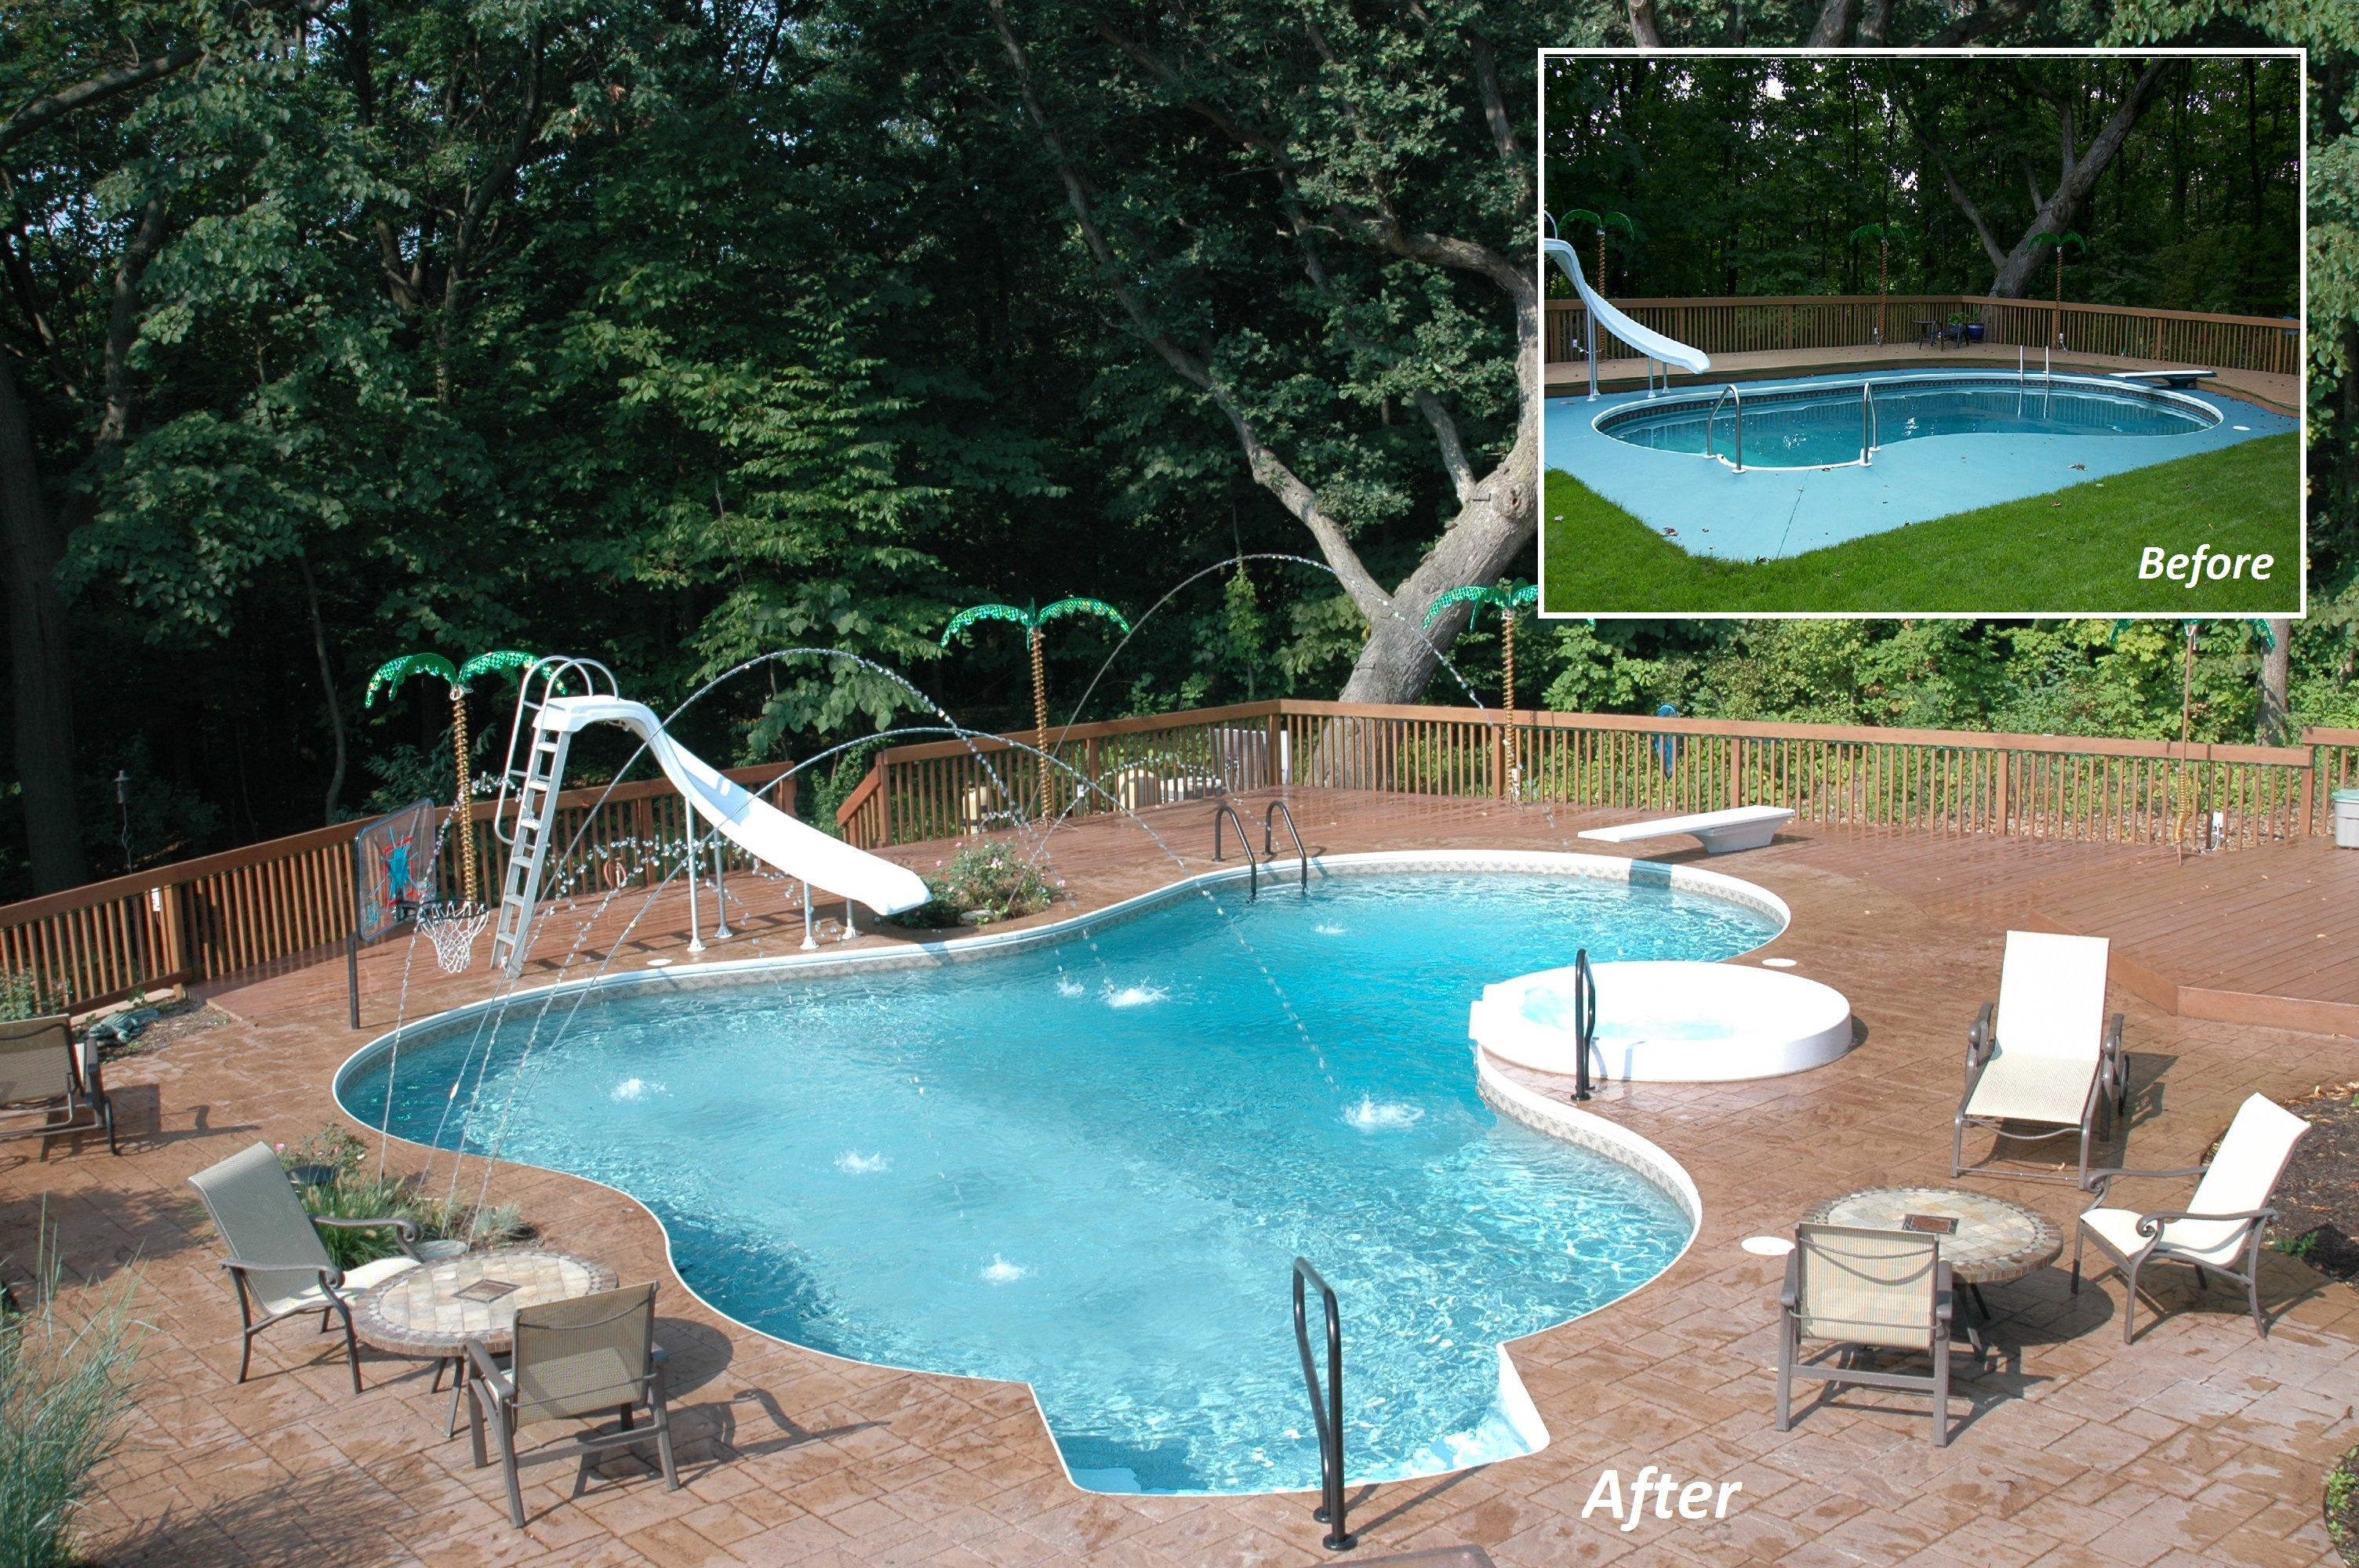 changing the shape of your pool or adding a paver brick or stamped